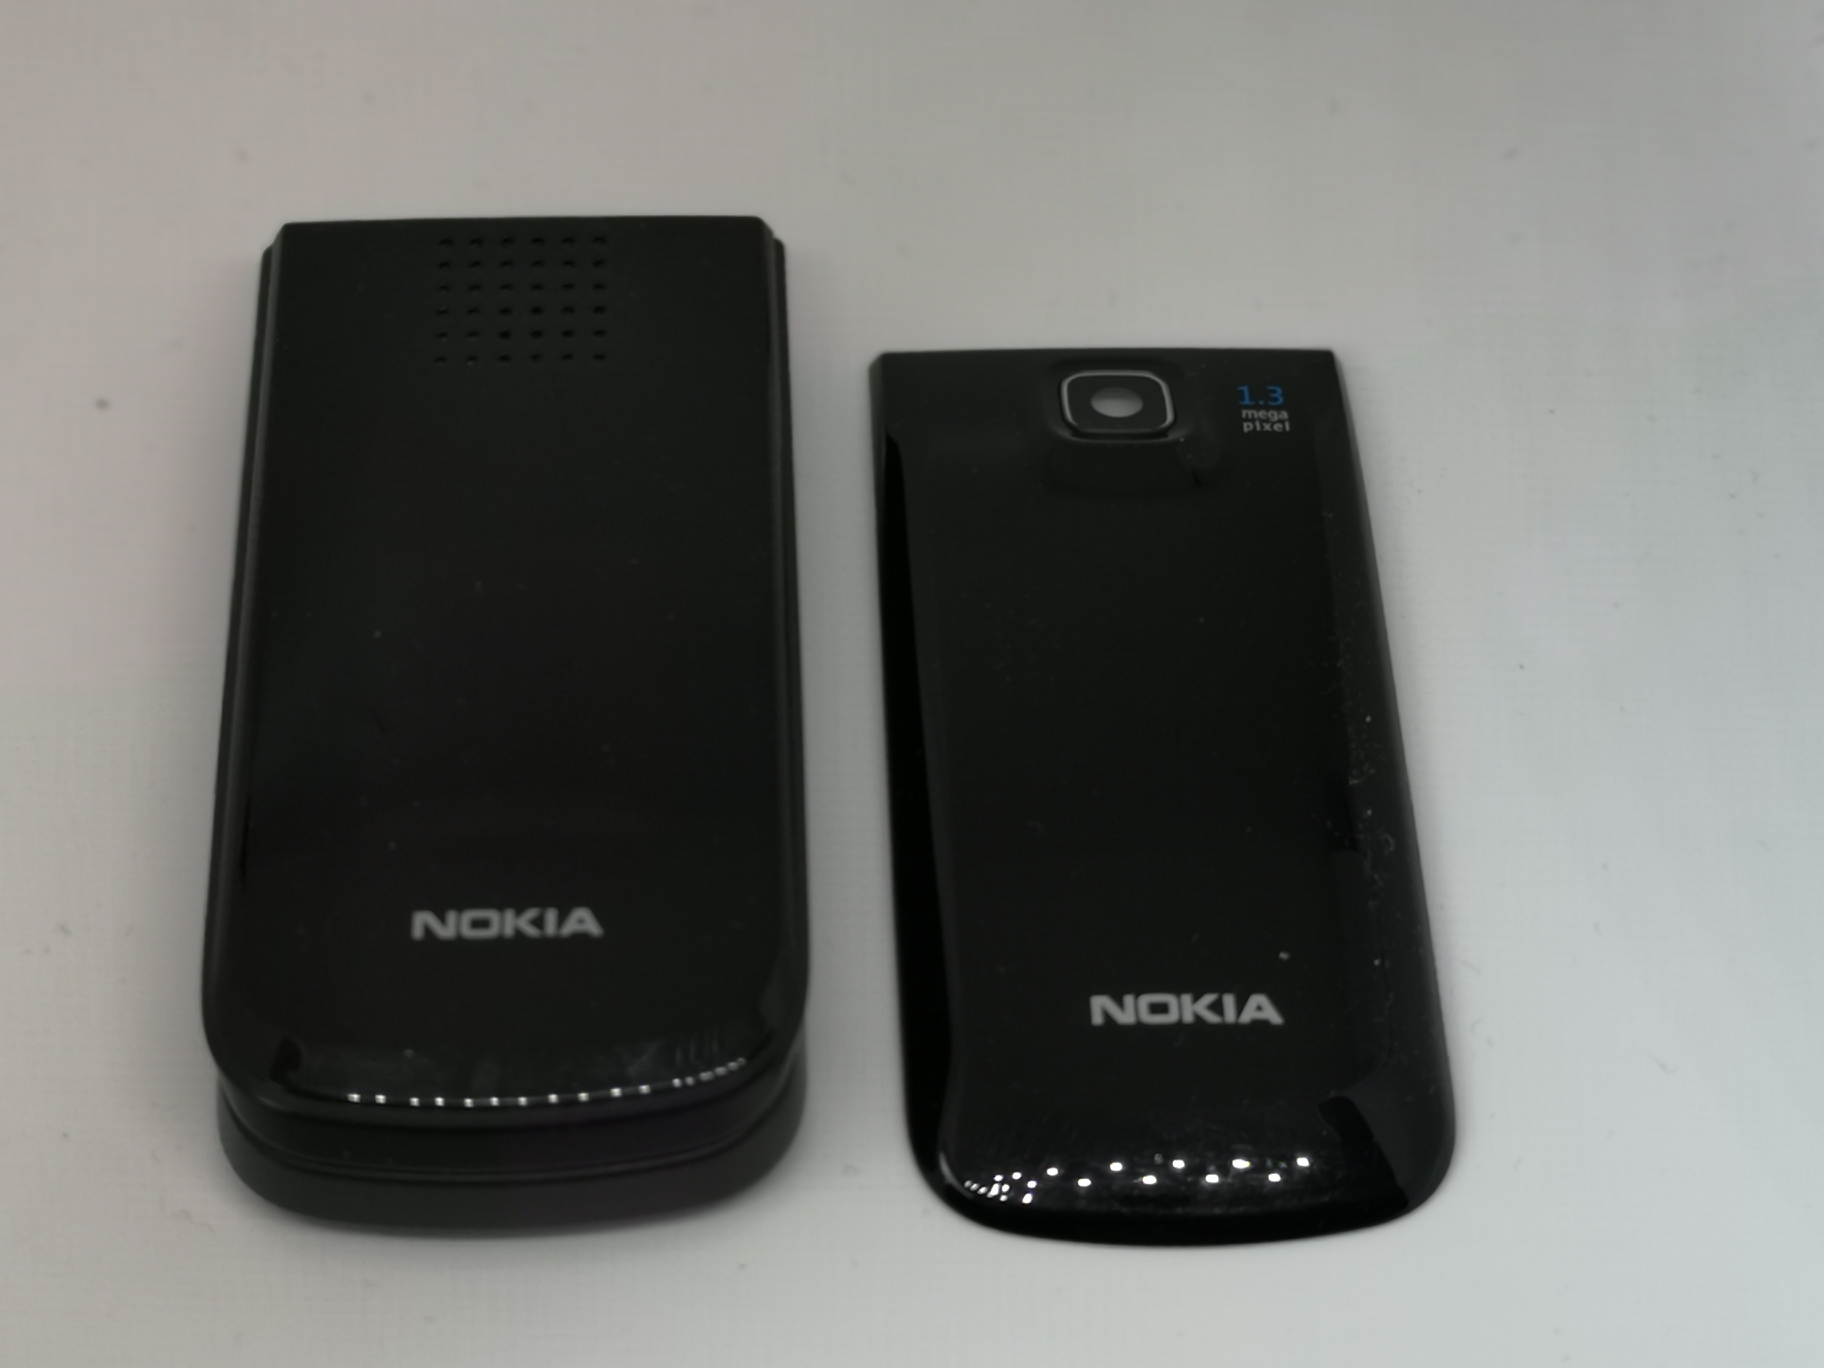 Nokia 2720 Fold Review - Entry Level Foldable Mobile Phone